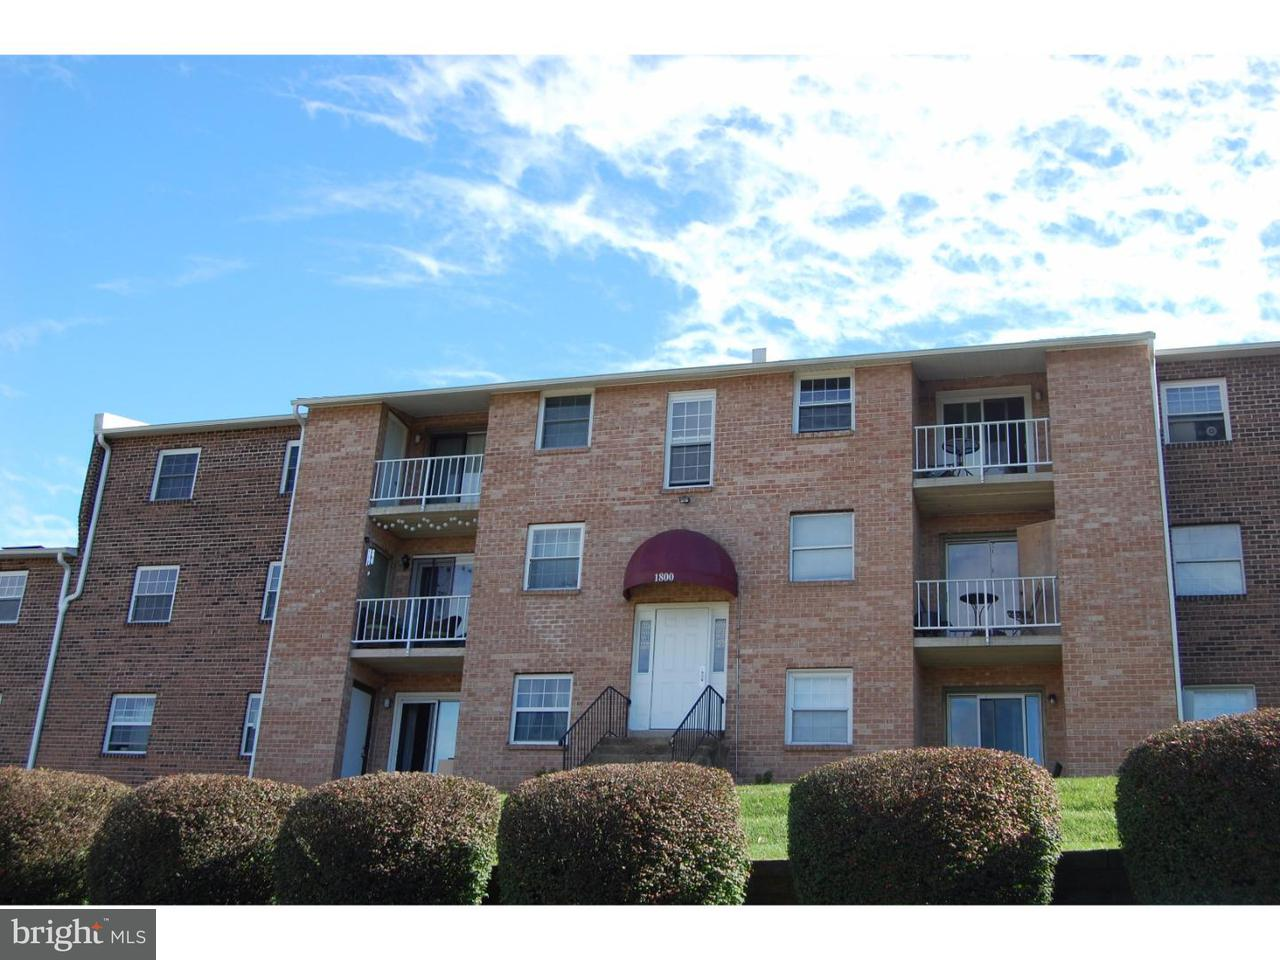 1822  Valley West Chester, PA 19382